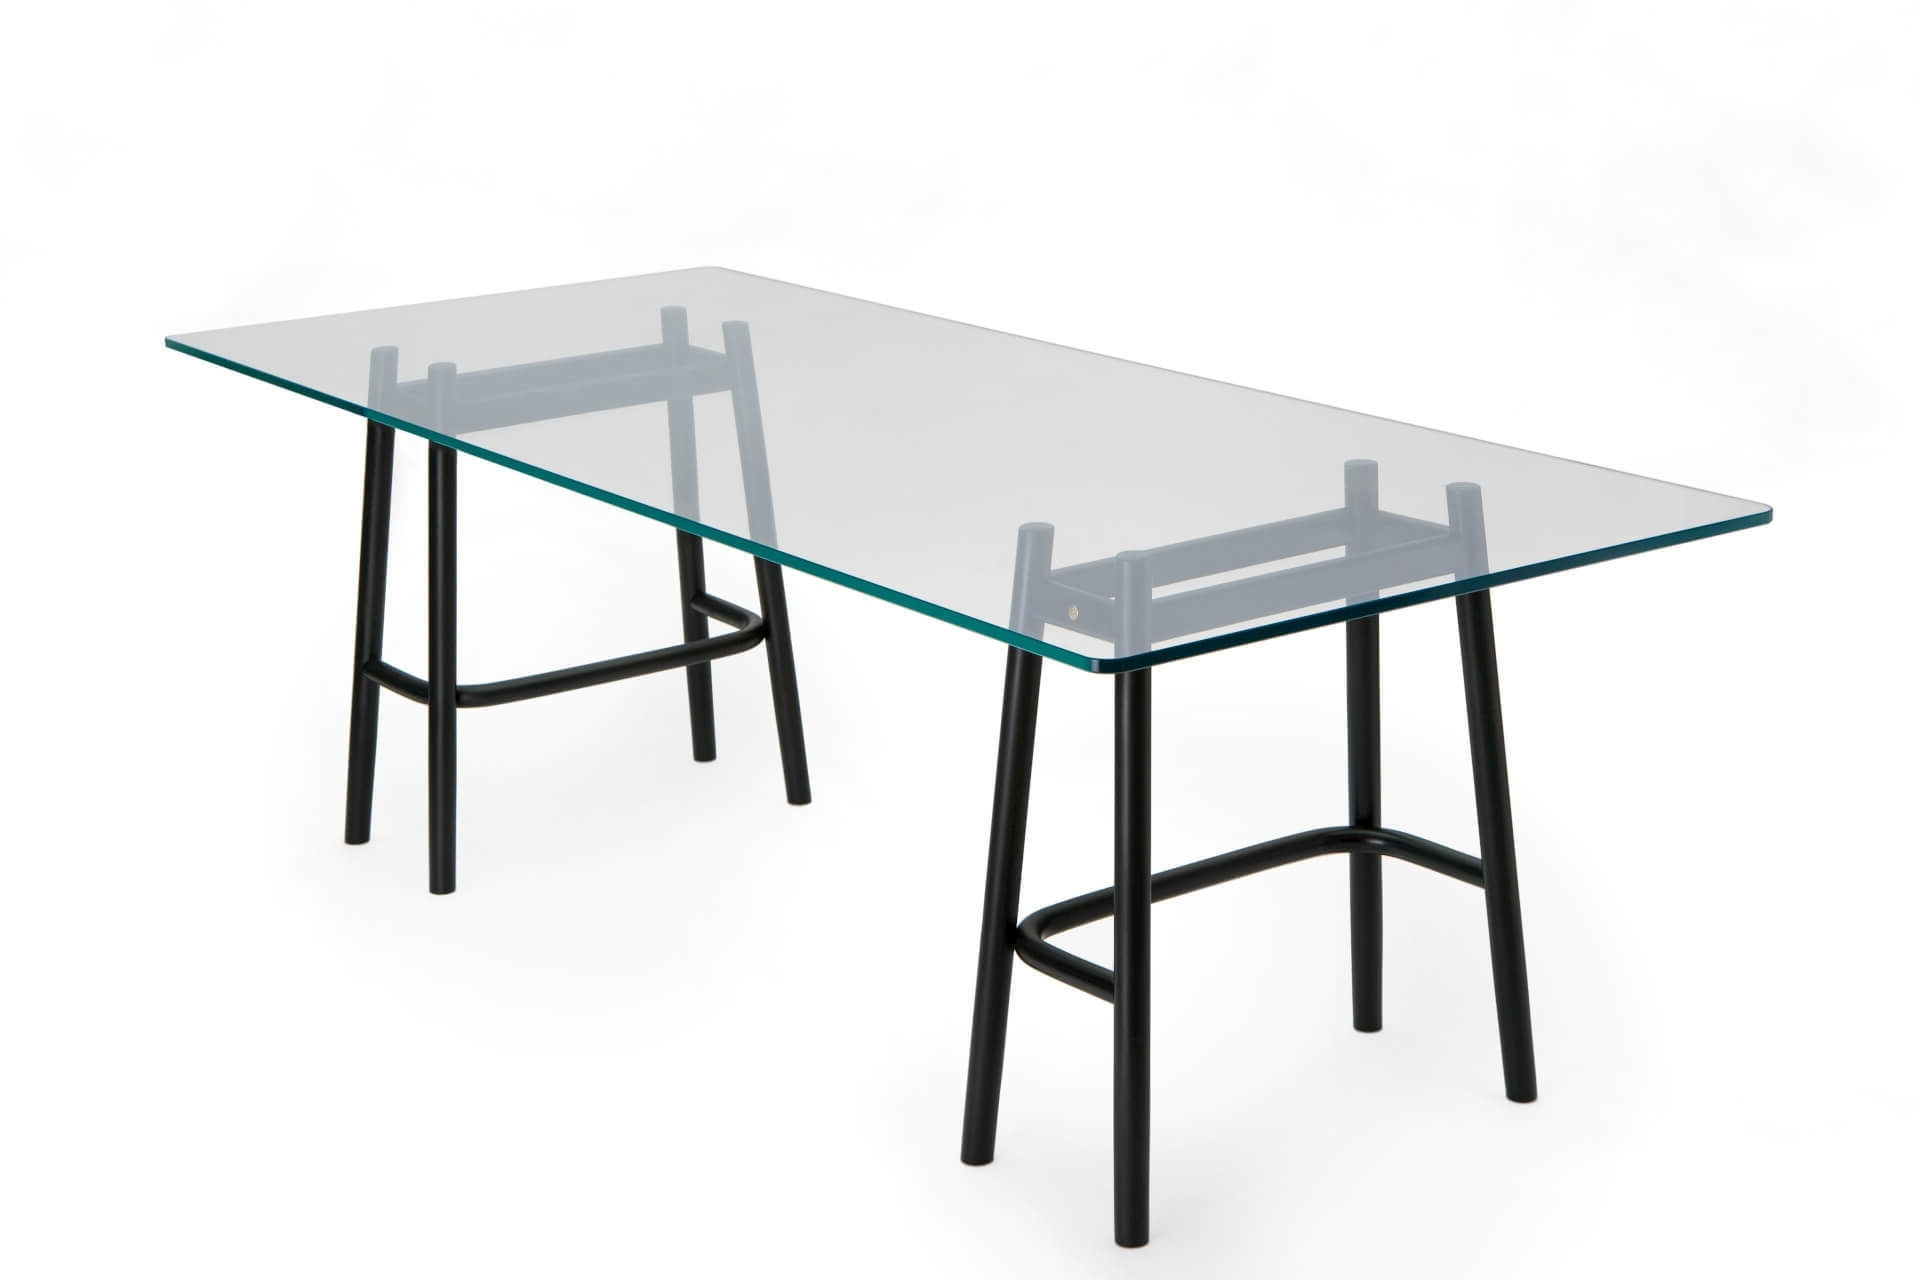 Vienna Dining Tables Intended For Most Recent Single Curve Dining Table – Gebrüder Thonet Vienna (View 13 of 25)